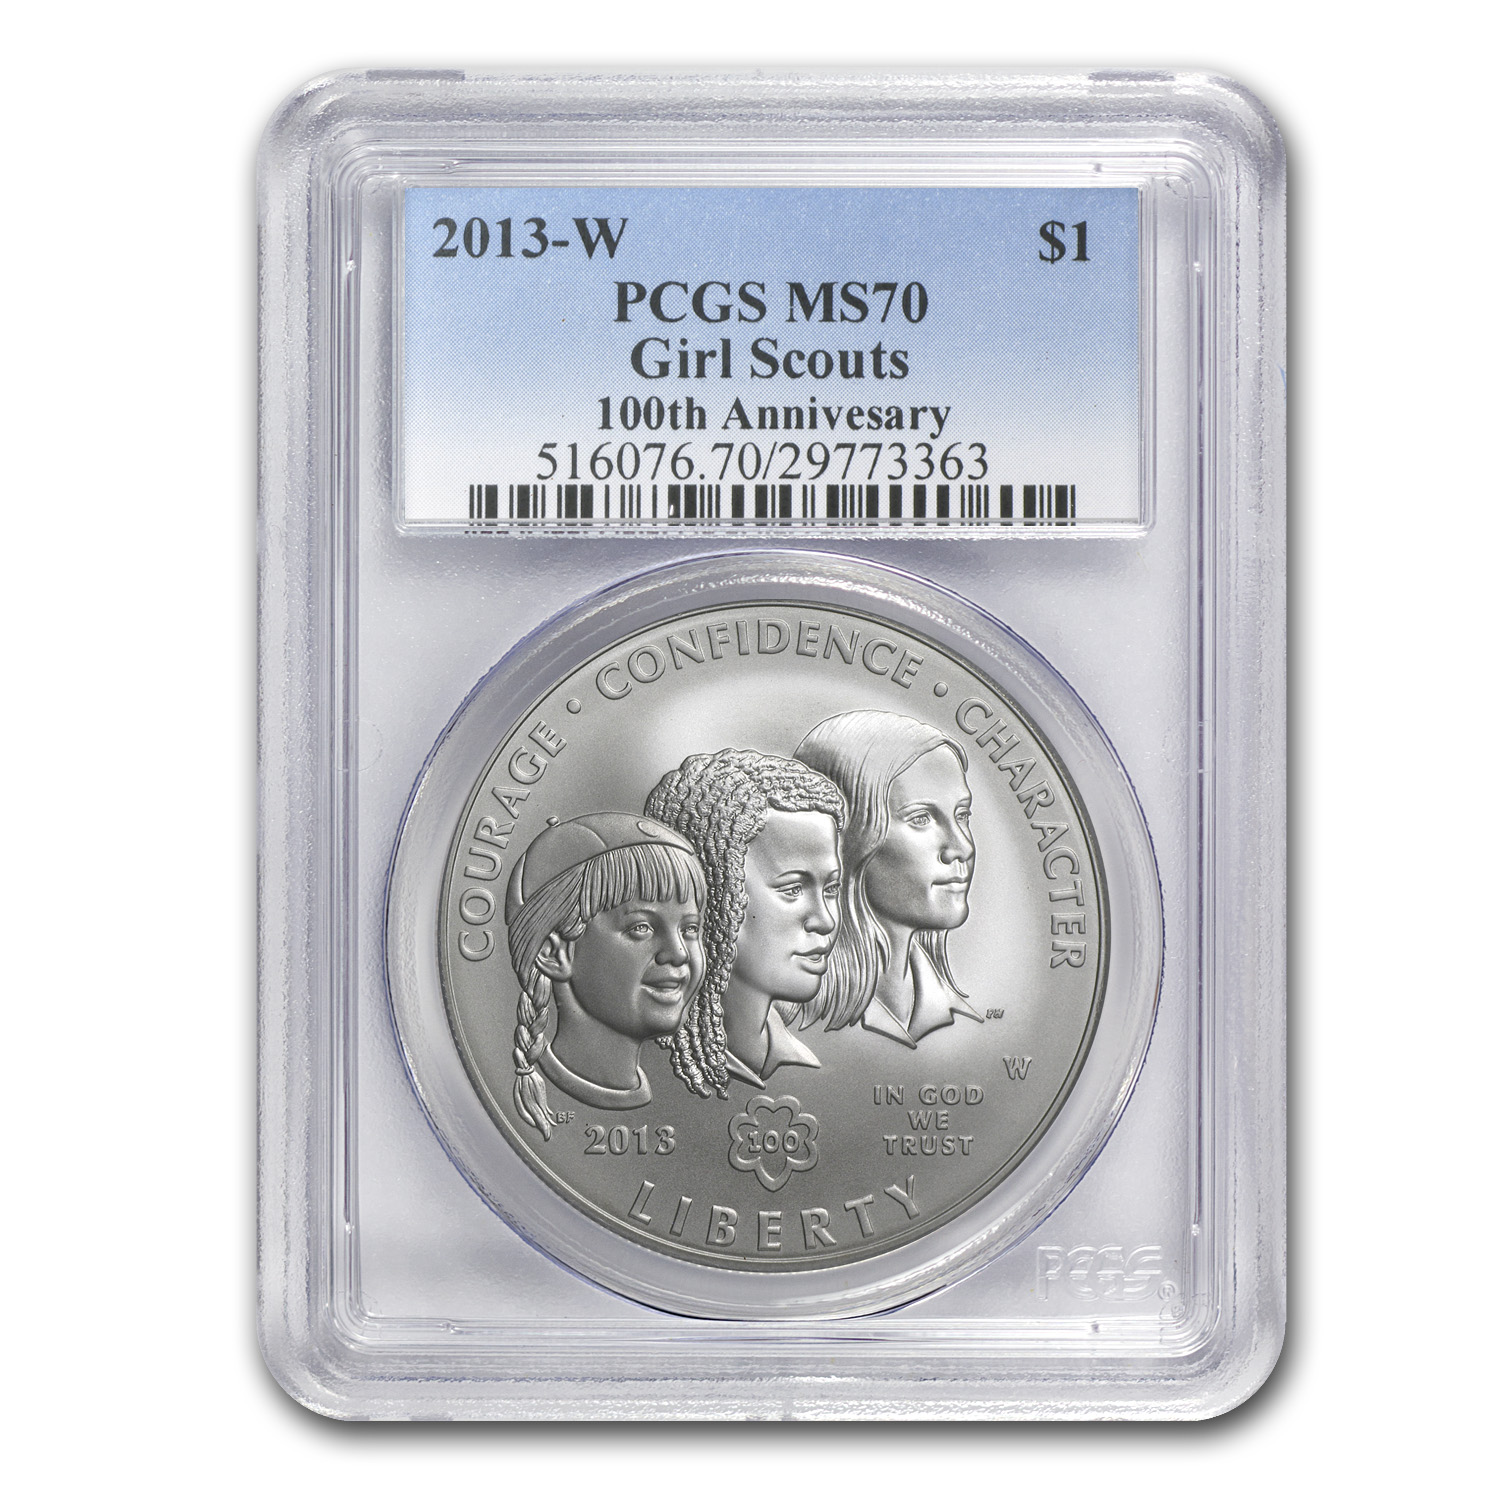 2013-W Girl Scouts $1 Silver Commemorative MS-70 PCGS